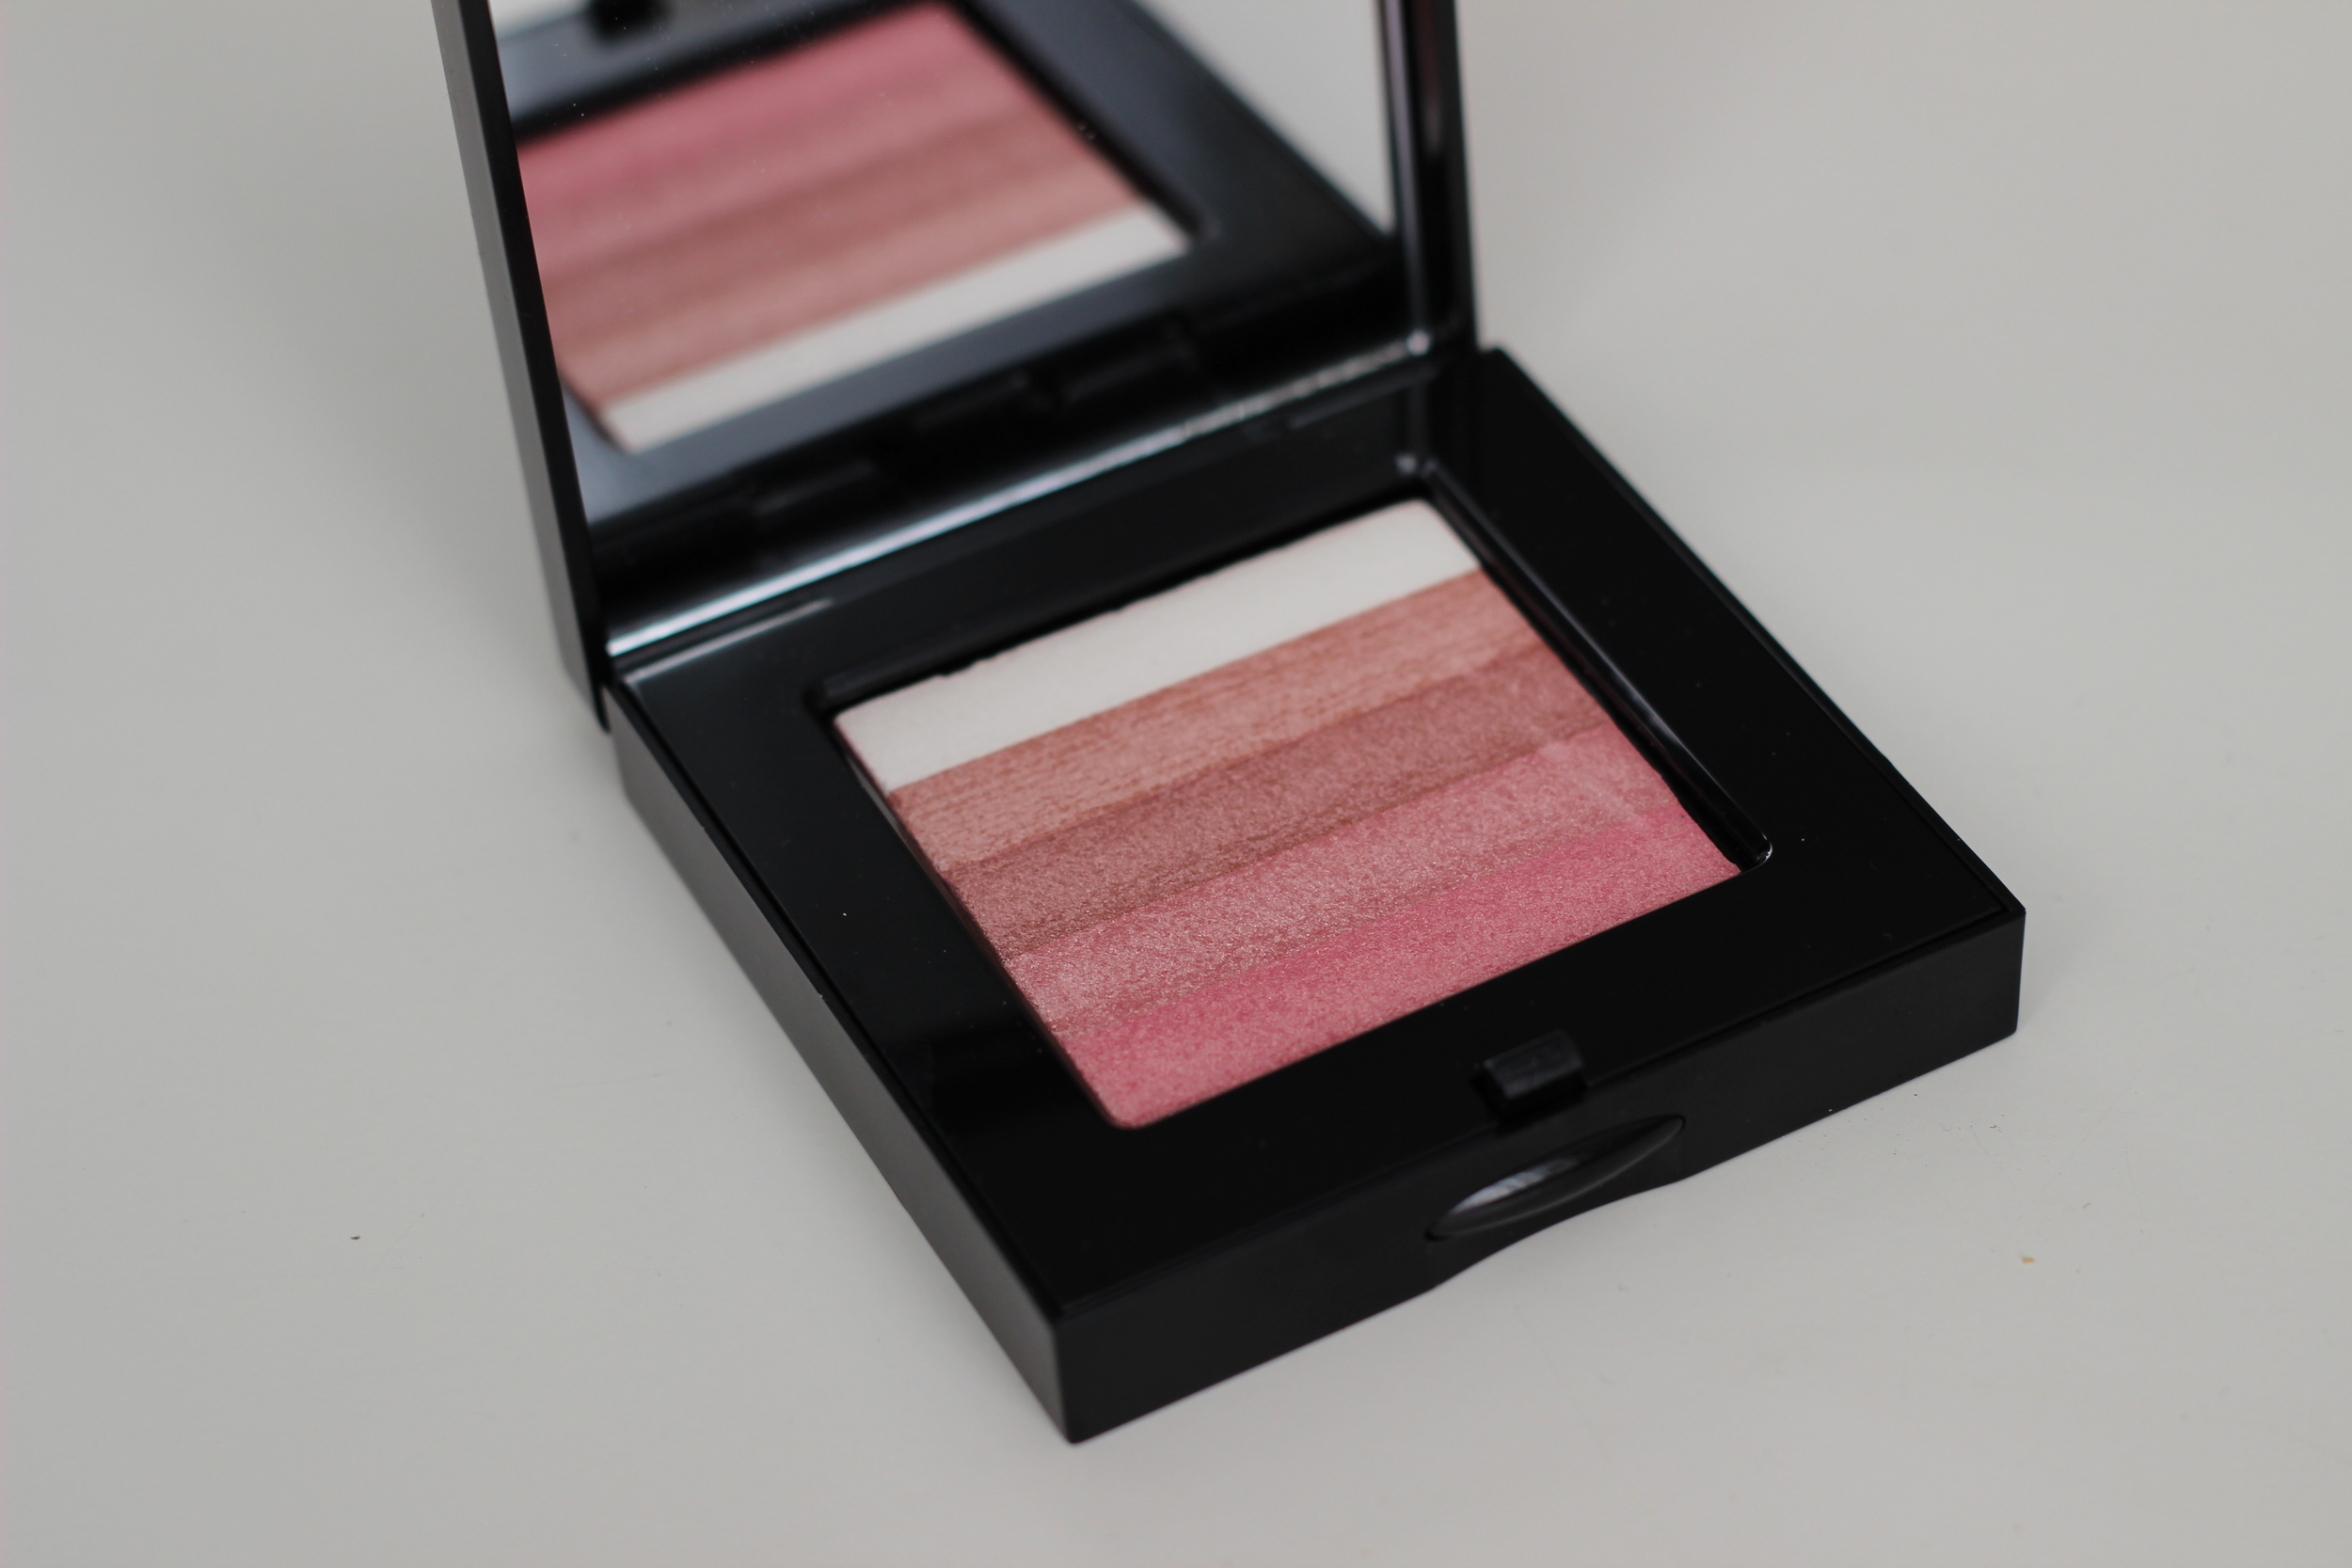 Bobbi Brown Shimmer Brick in Rose